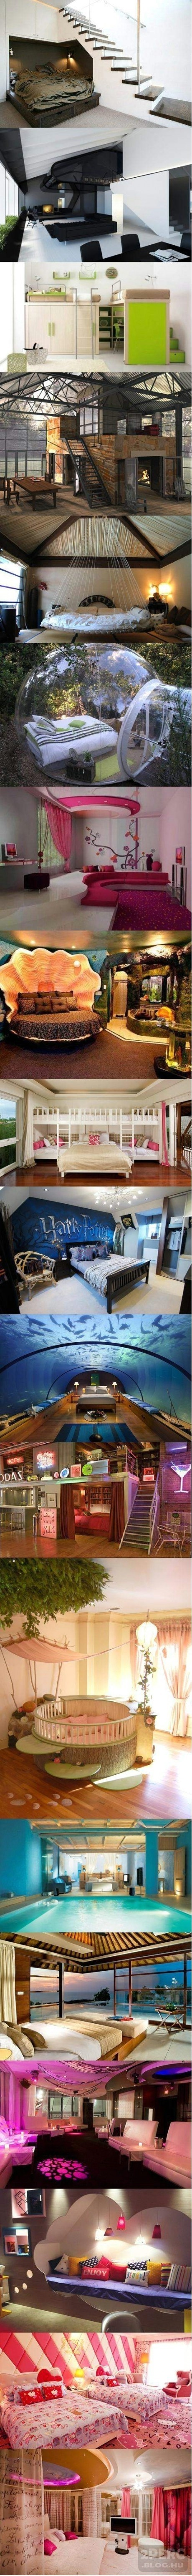 8th from the bottom - the one just below the aquarium room - is so awesome. Not necessarily the style, but the idea of the bedroom curtained off in that cubbyhole beneath the stairs in a loft? Love it! :D